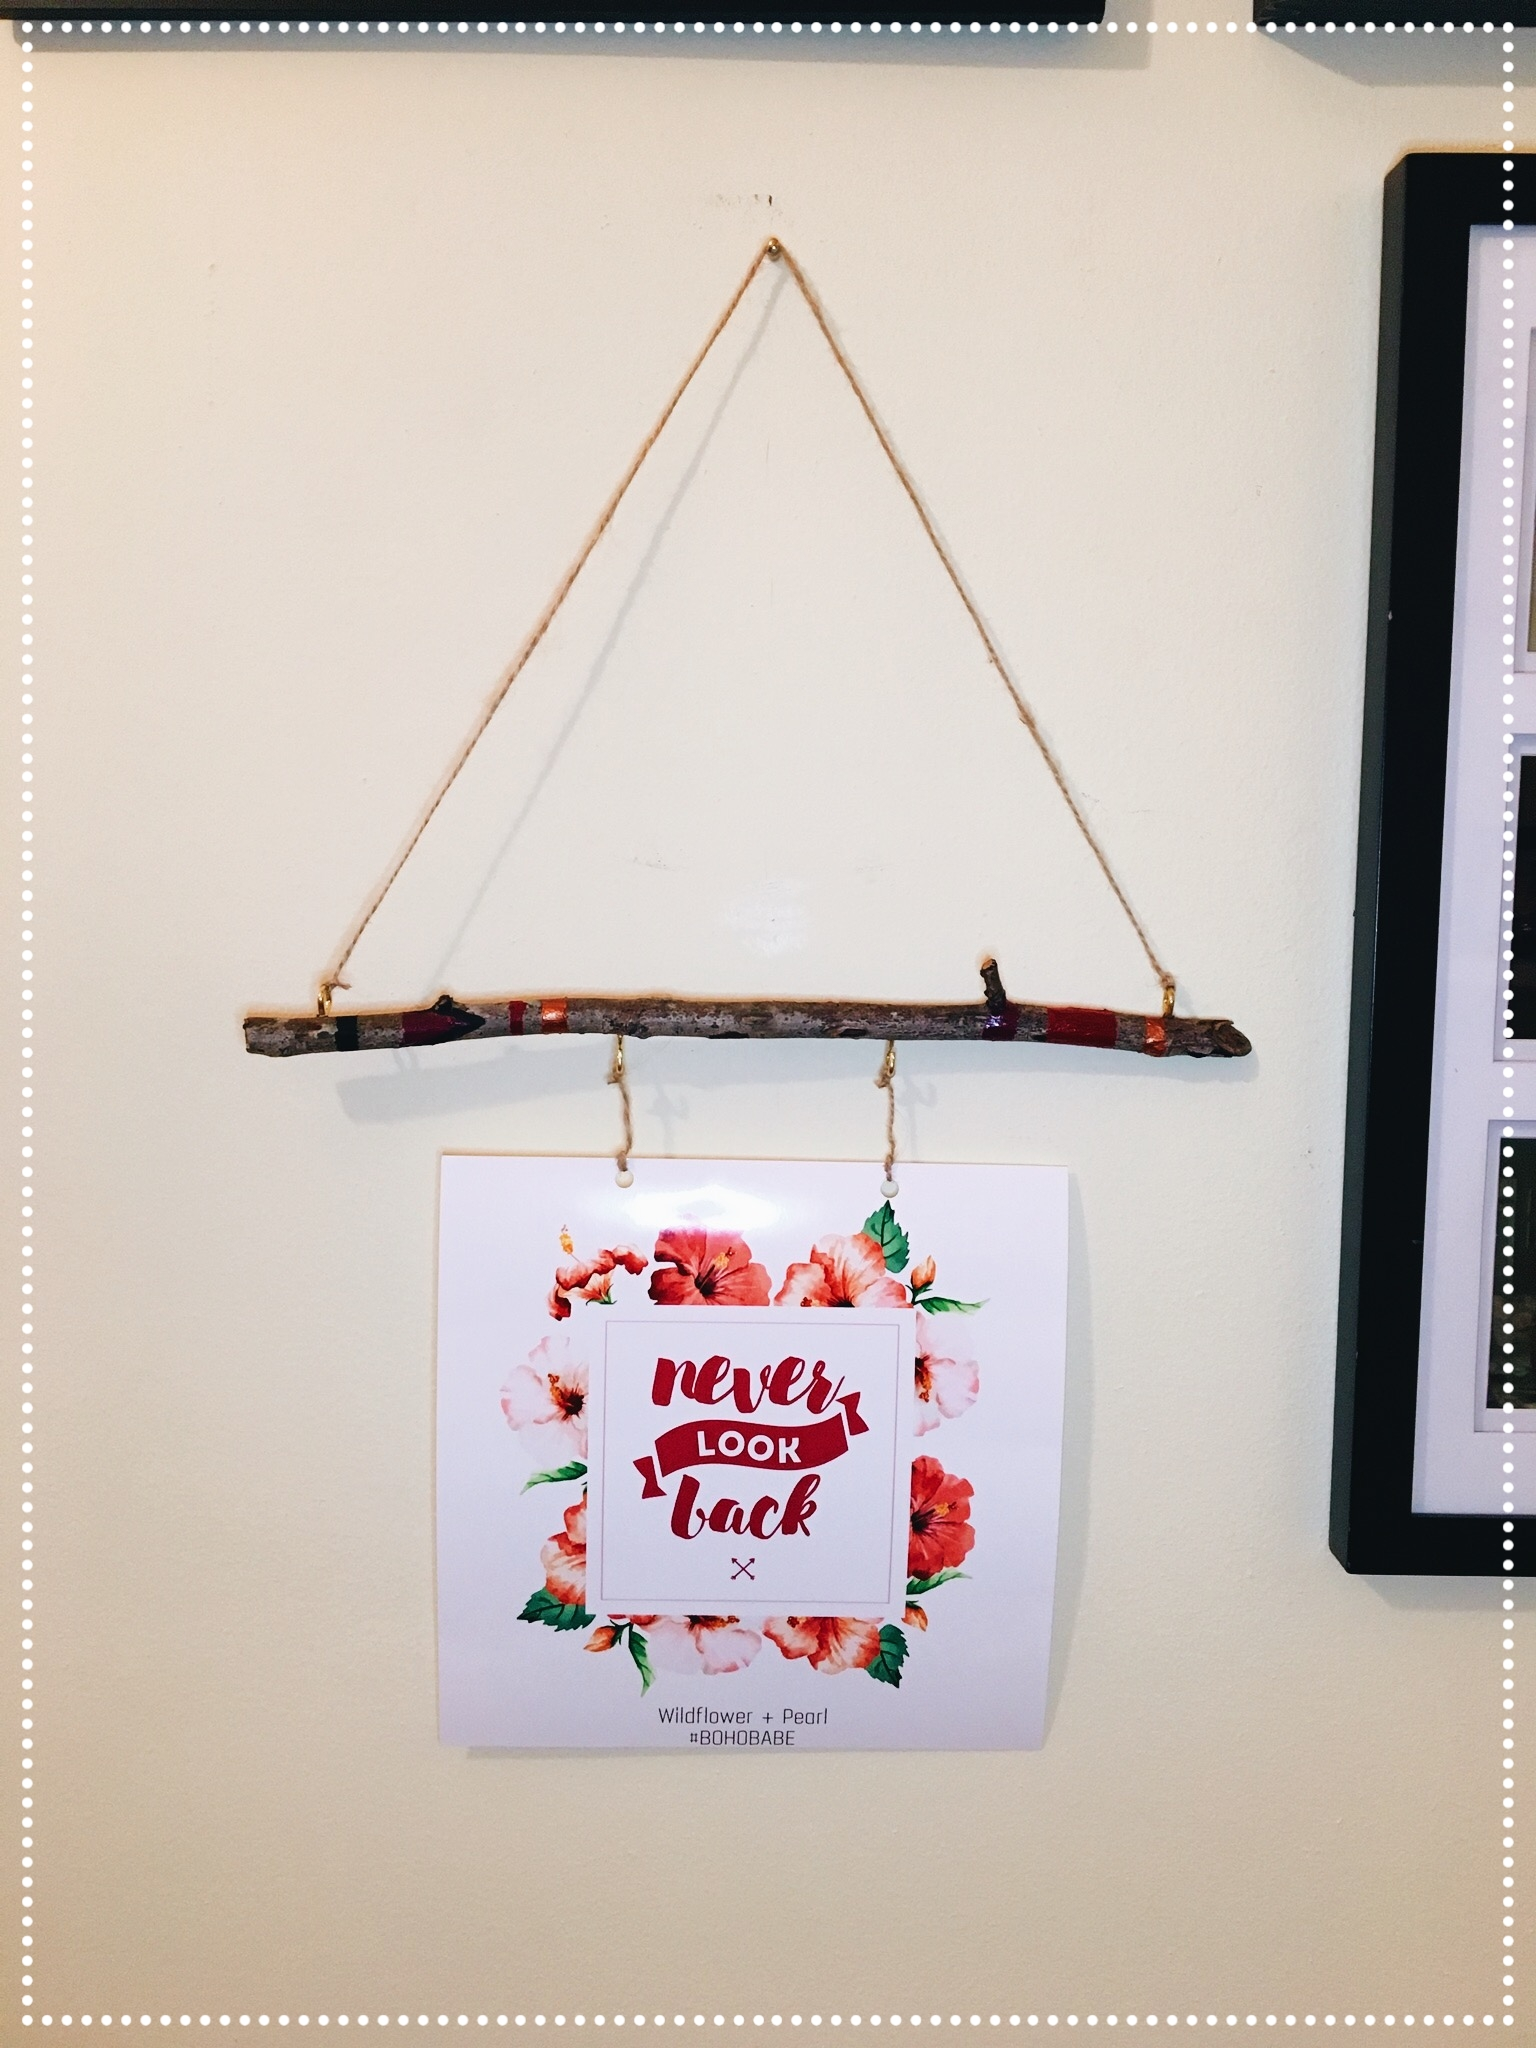 Hang the wall art on your dorm wall. It will also make a great addition to a gallery wall.